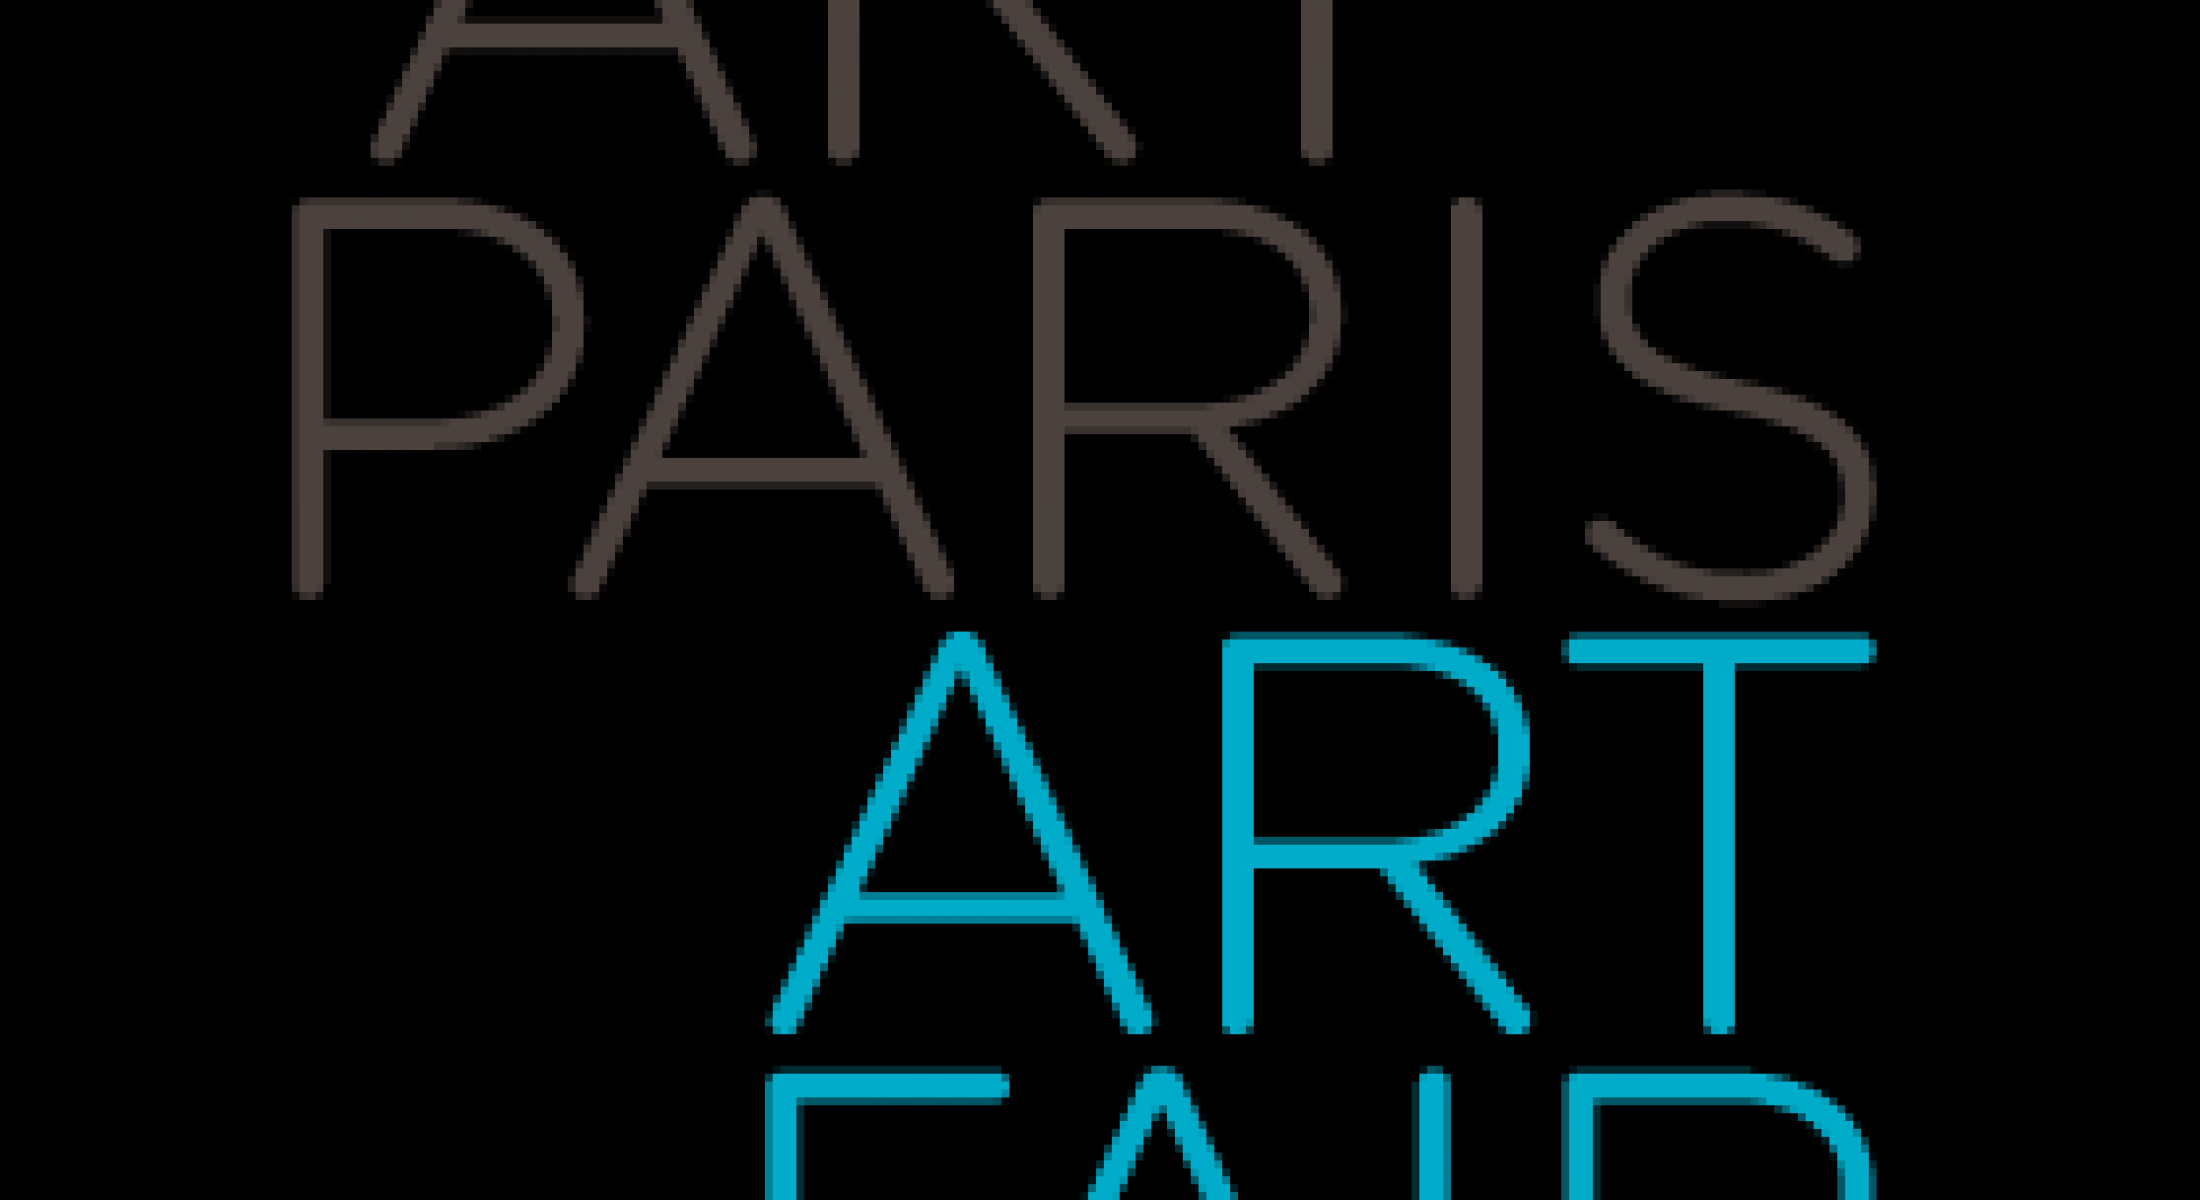 Art Paris 2019 press release - 14th June 2018